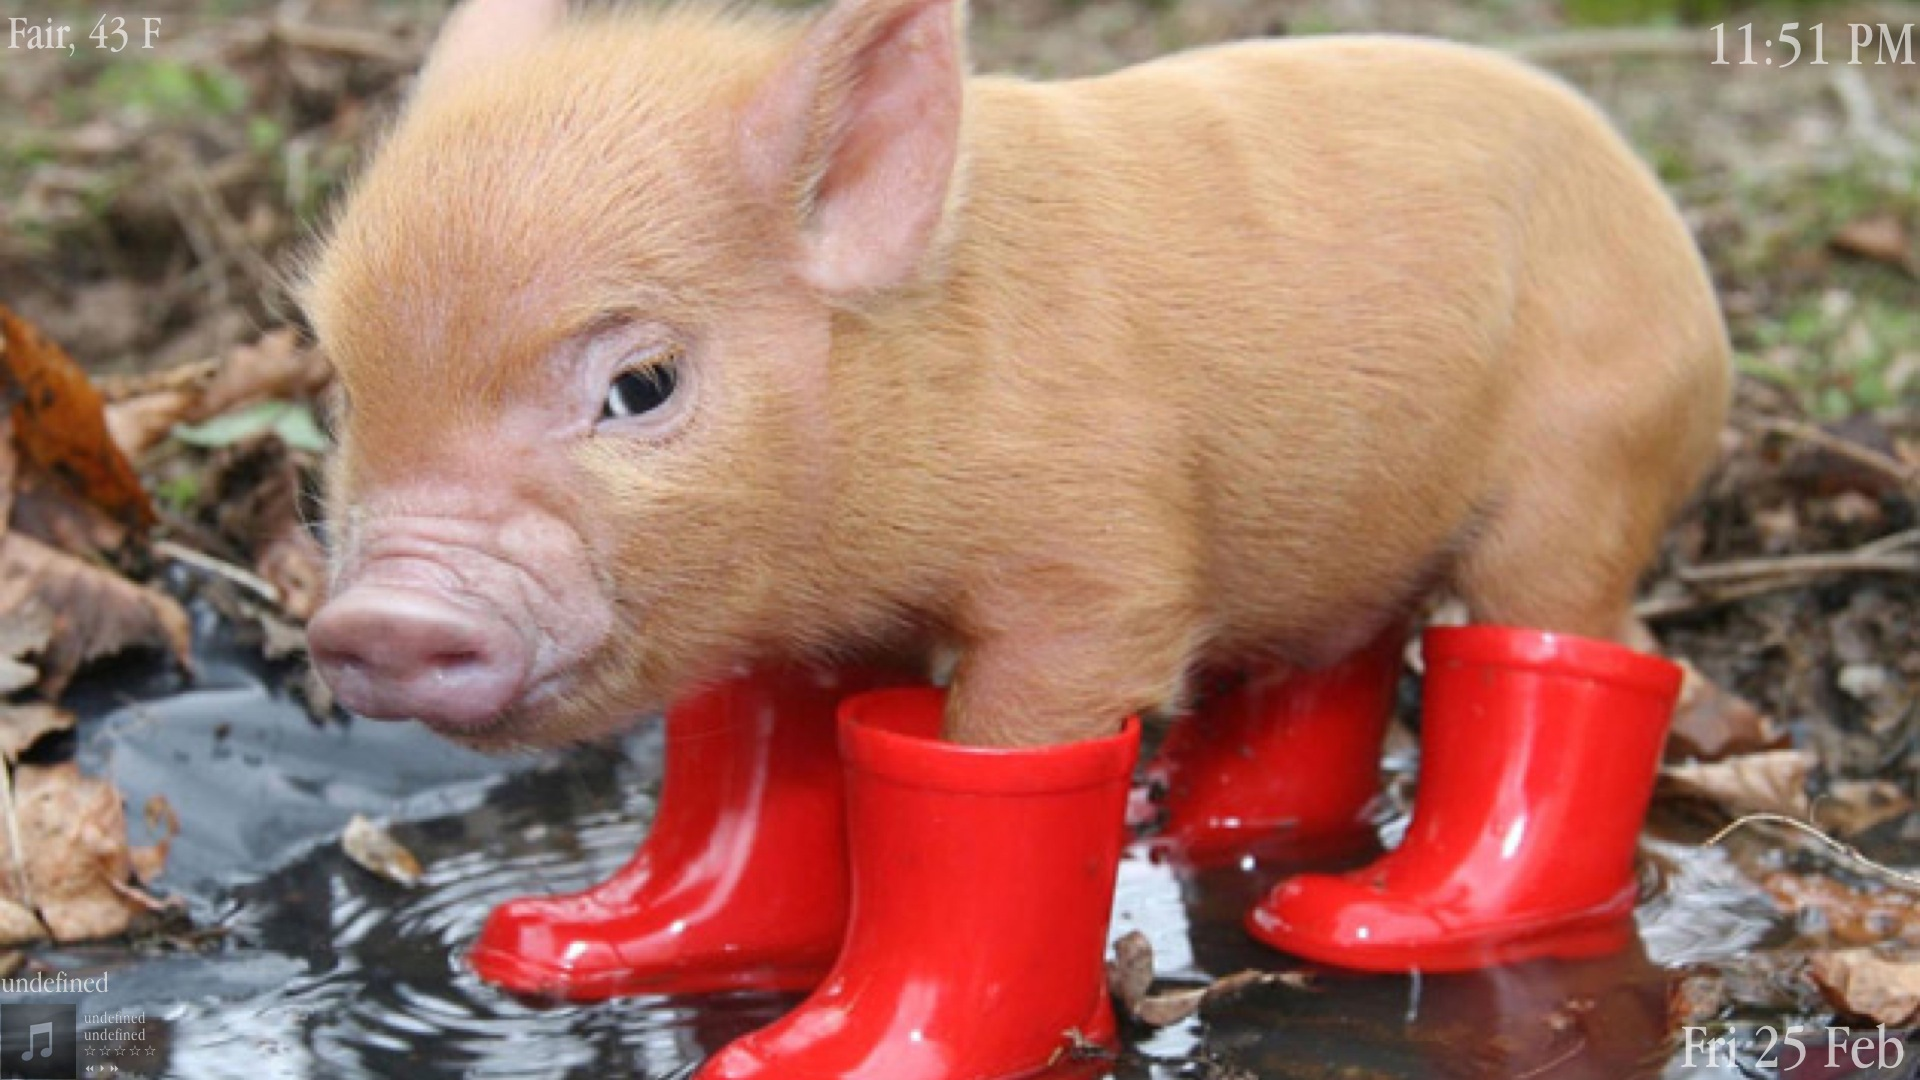 Pig in boots wallpapers and images   wallpapers pictures photos 1920x1080